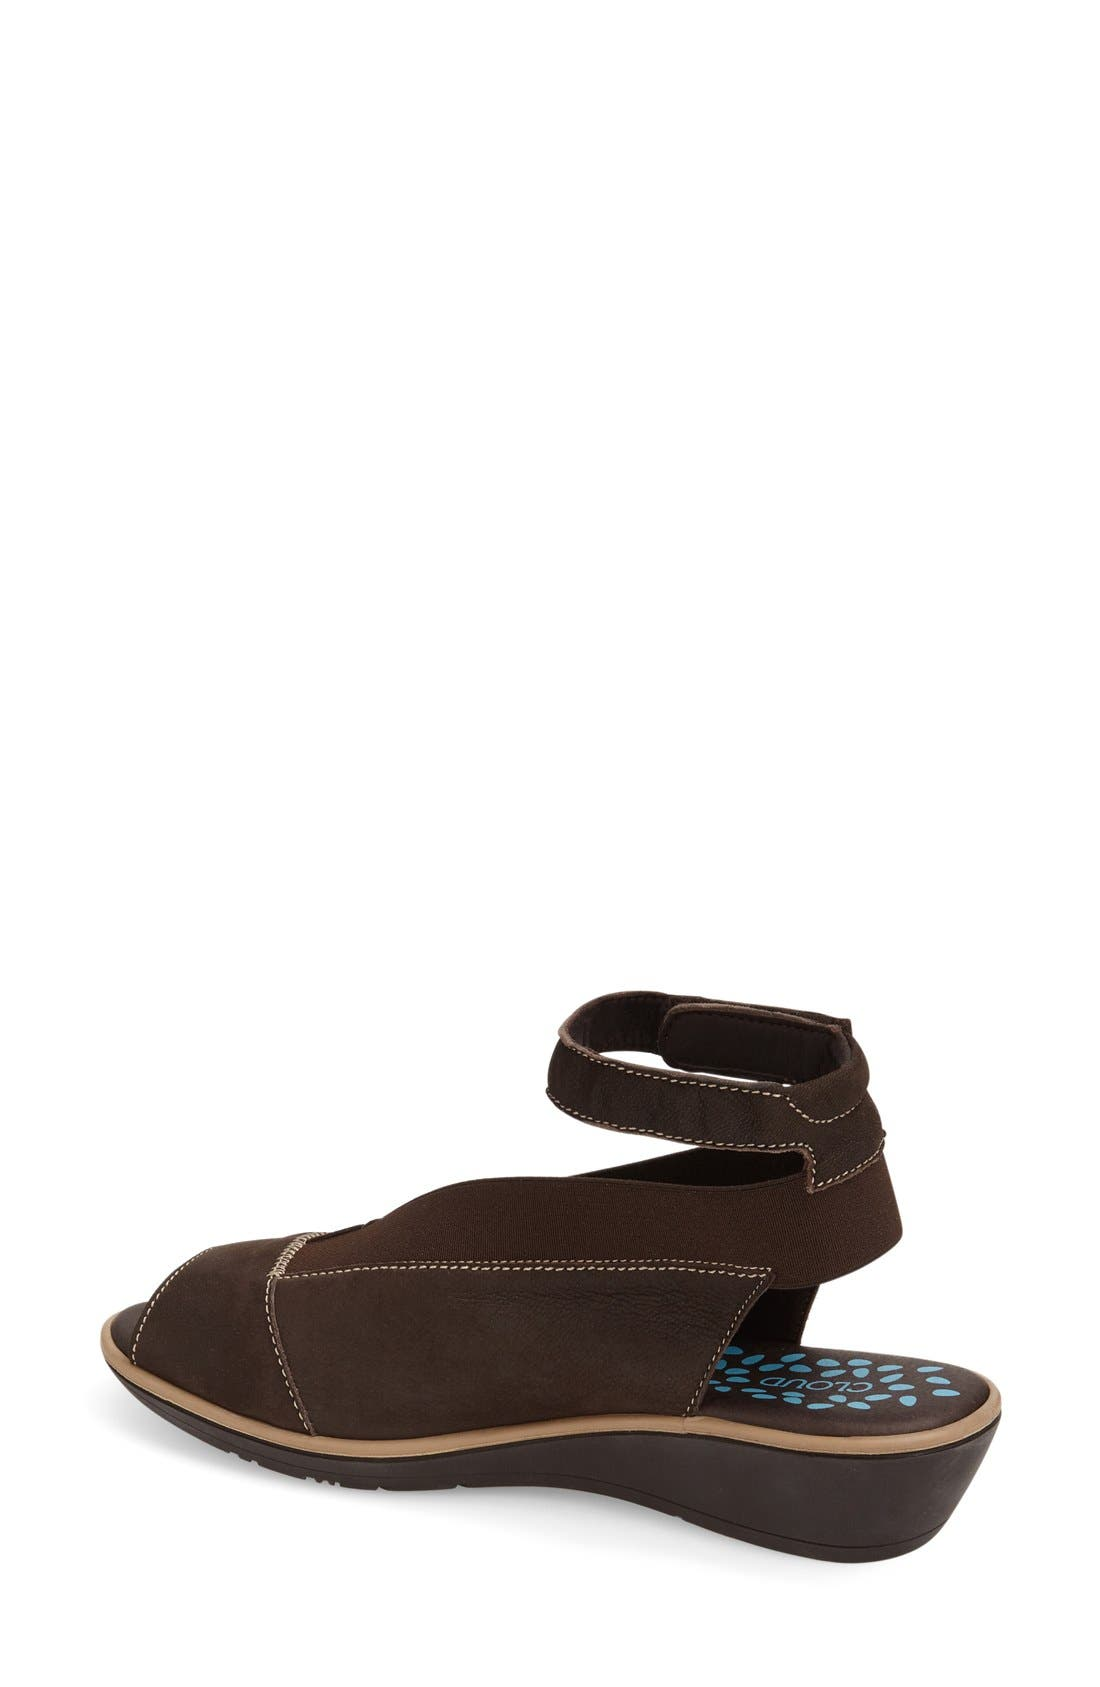 Alternate Image 2  - CLOUD Saucy Ankle Strap Wedge (Women)